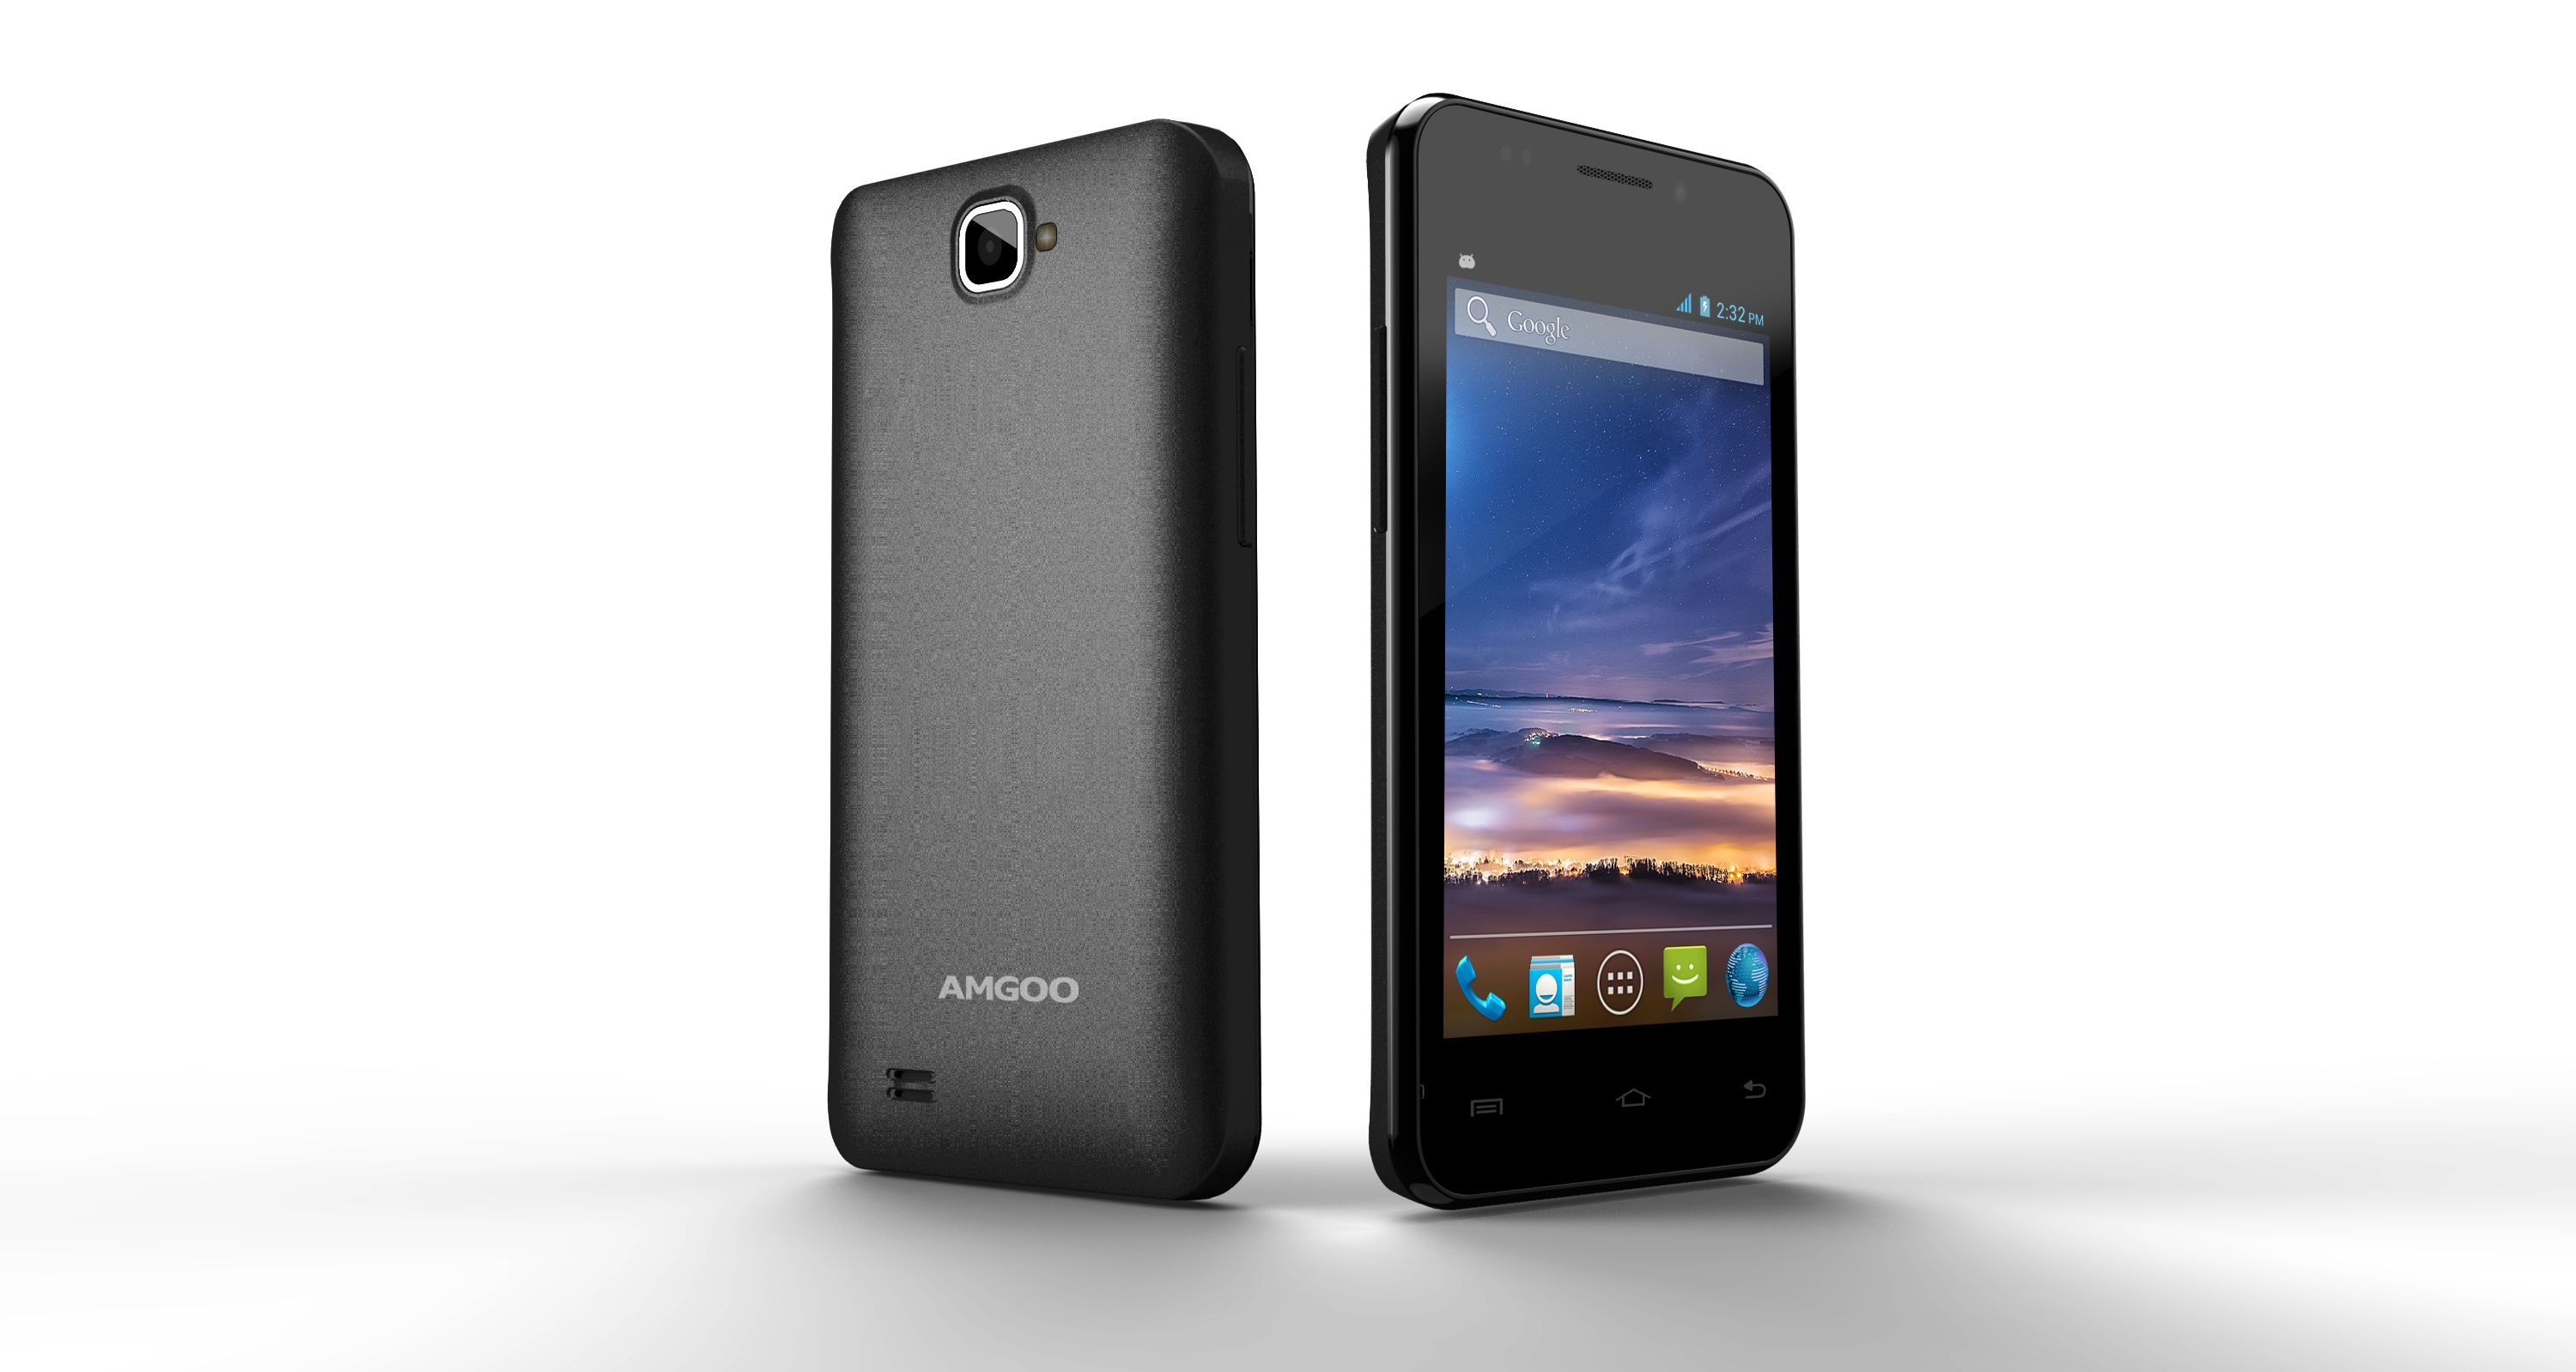 The Amgoo AM516 runs on the Android 4.2 operating system